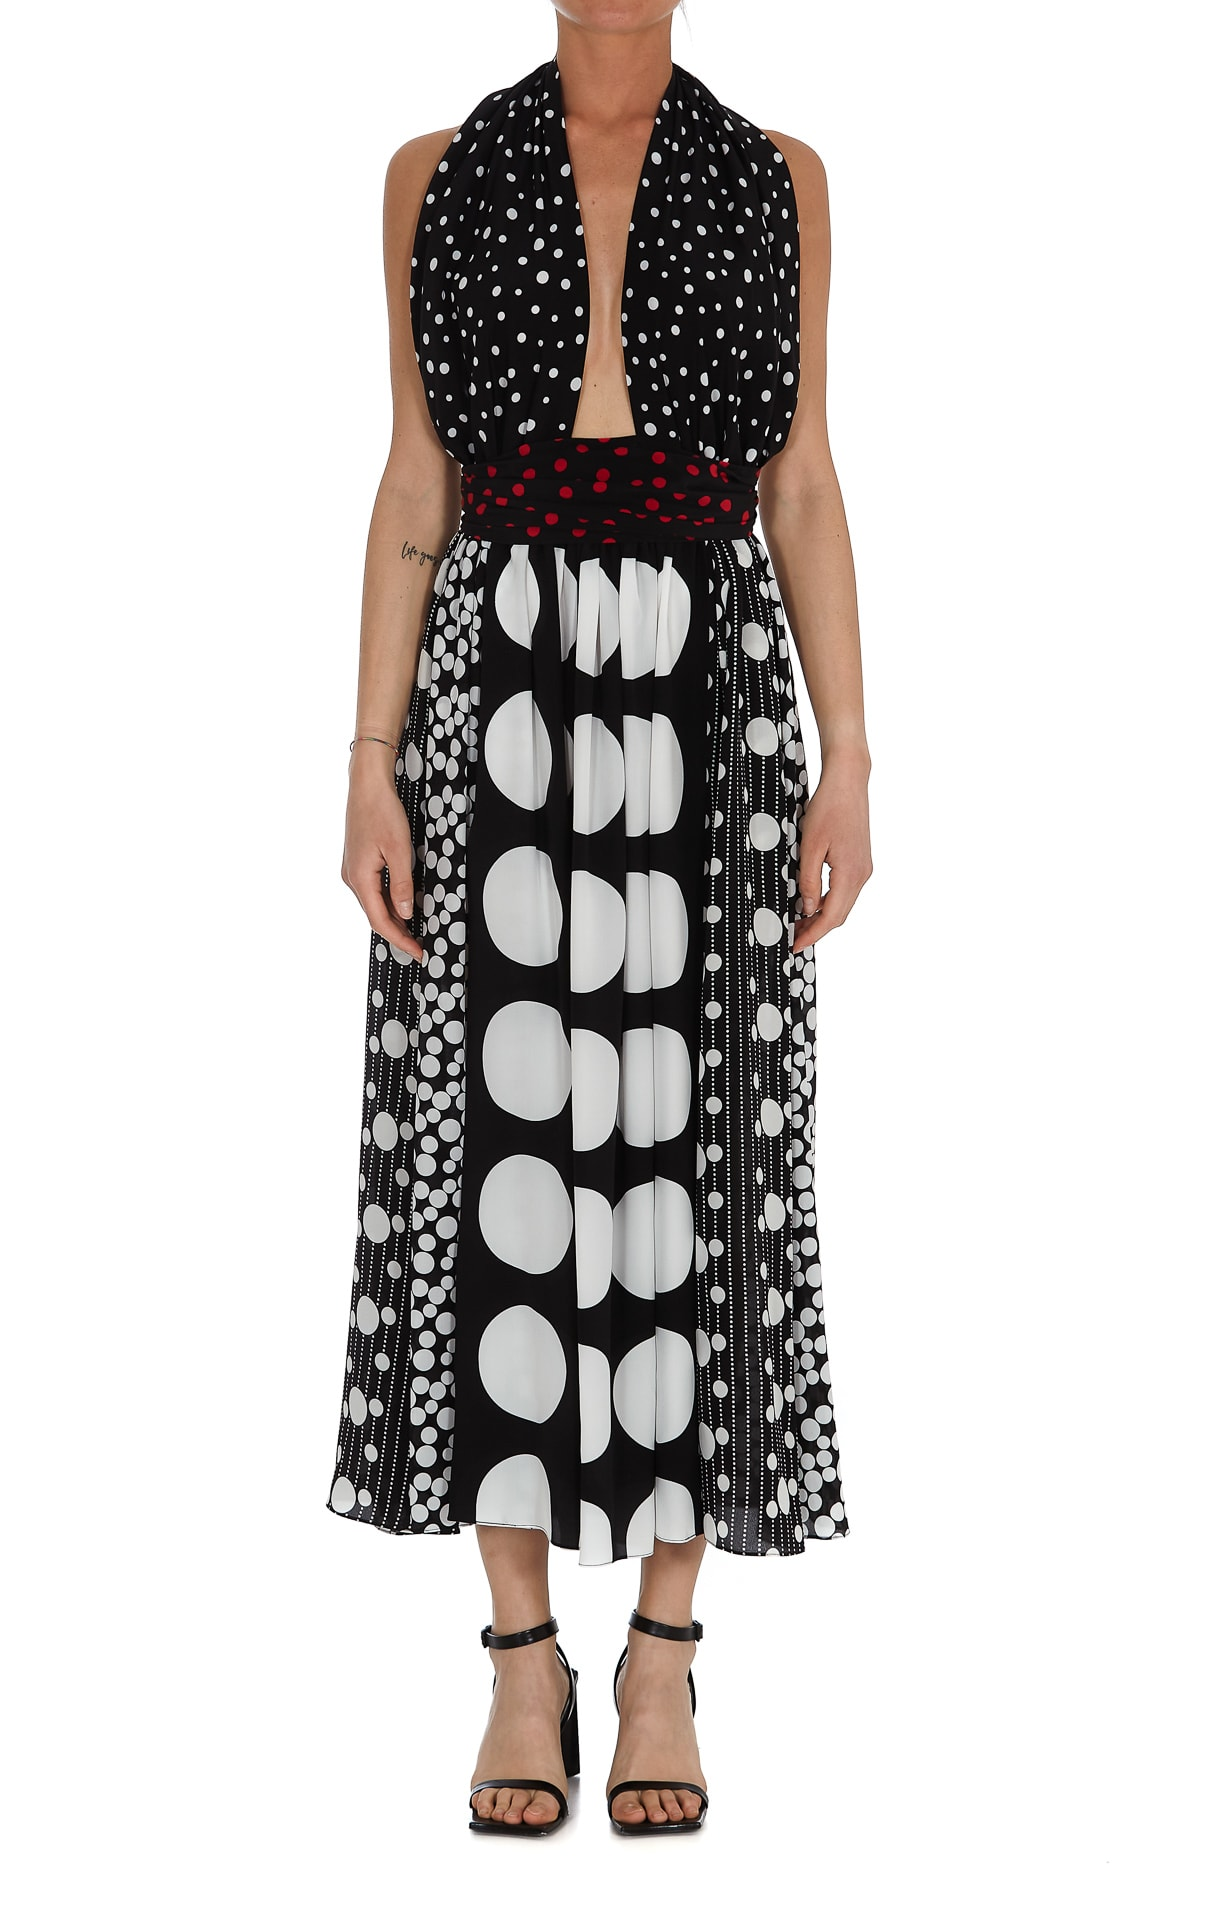 Dolce & Gabbana DRESS POLKA DOT